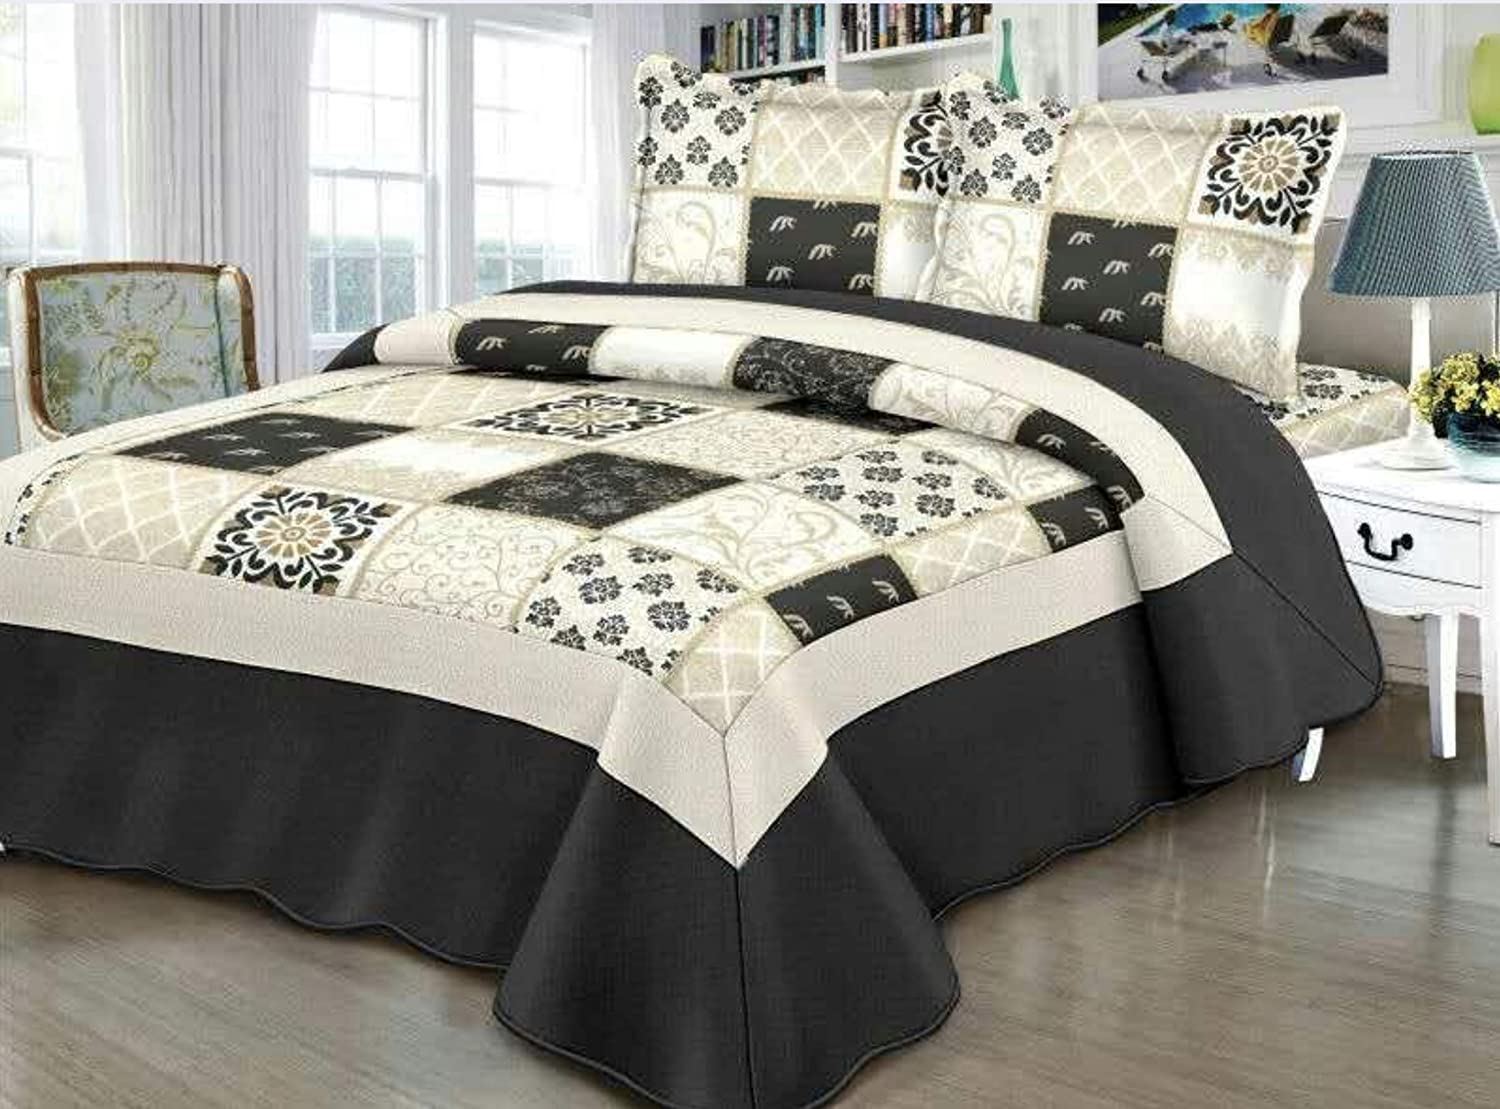 Empire Home Traditional Reversible 3-Piece Quilted Bedding Bedspread Coverlet (Black Patchwork, Queen Size)